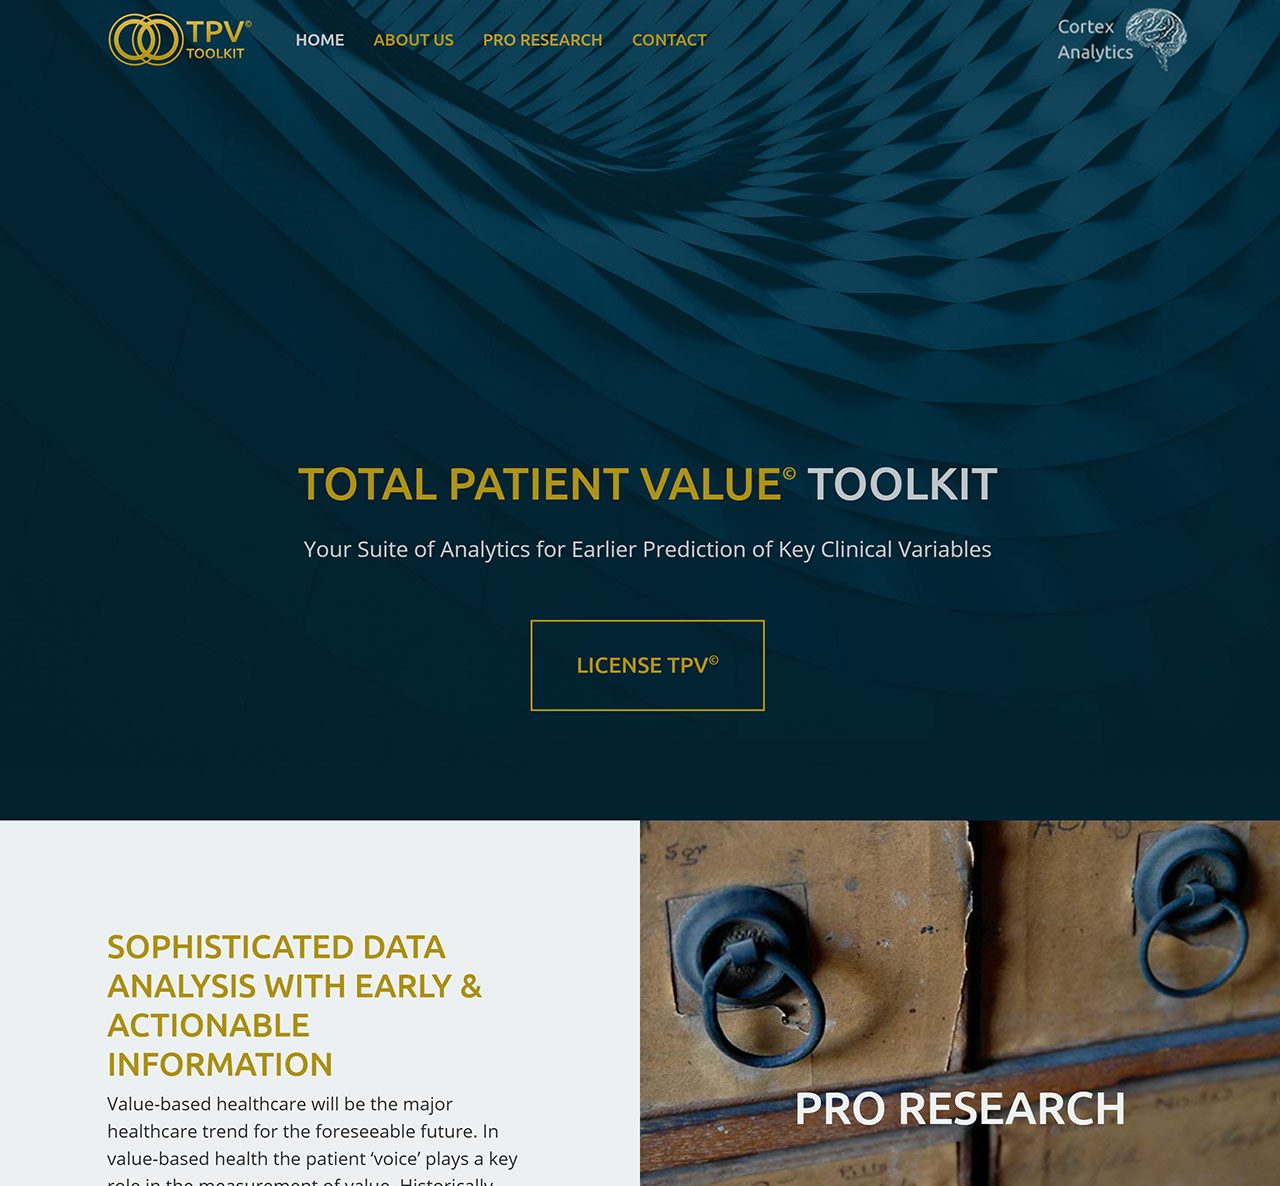 Cortex Analytics Homepage